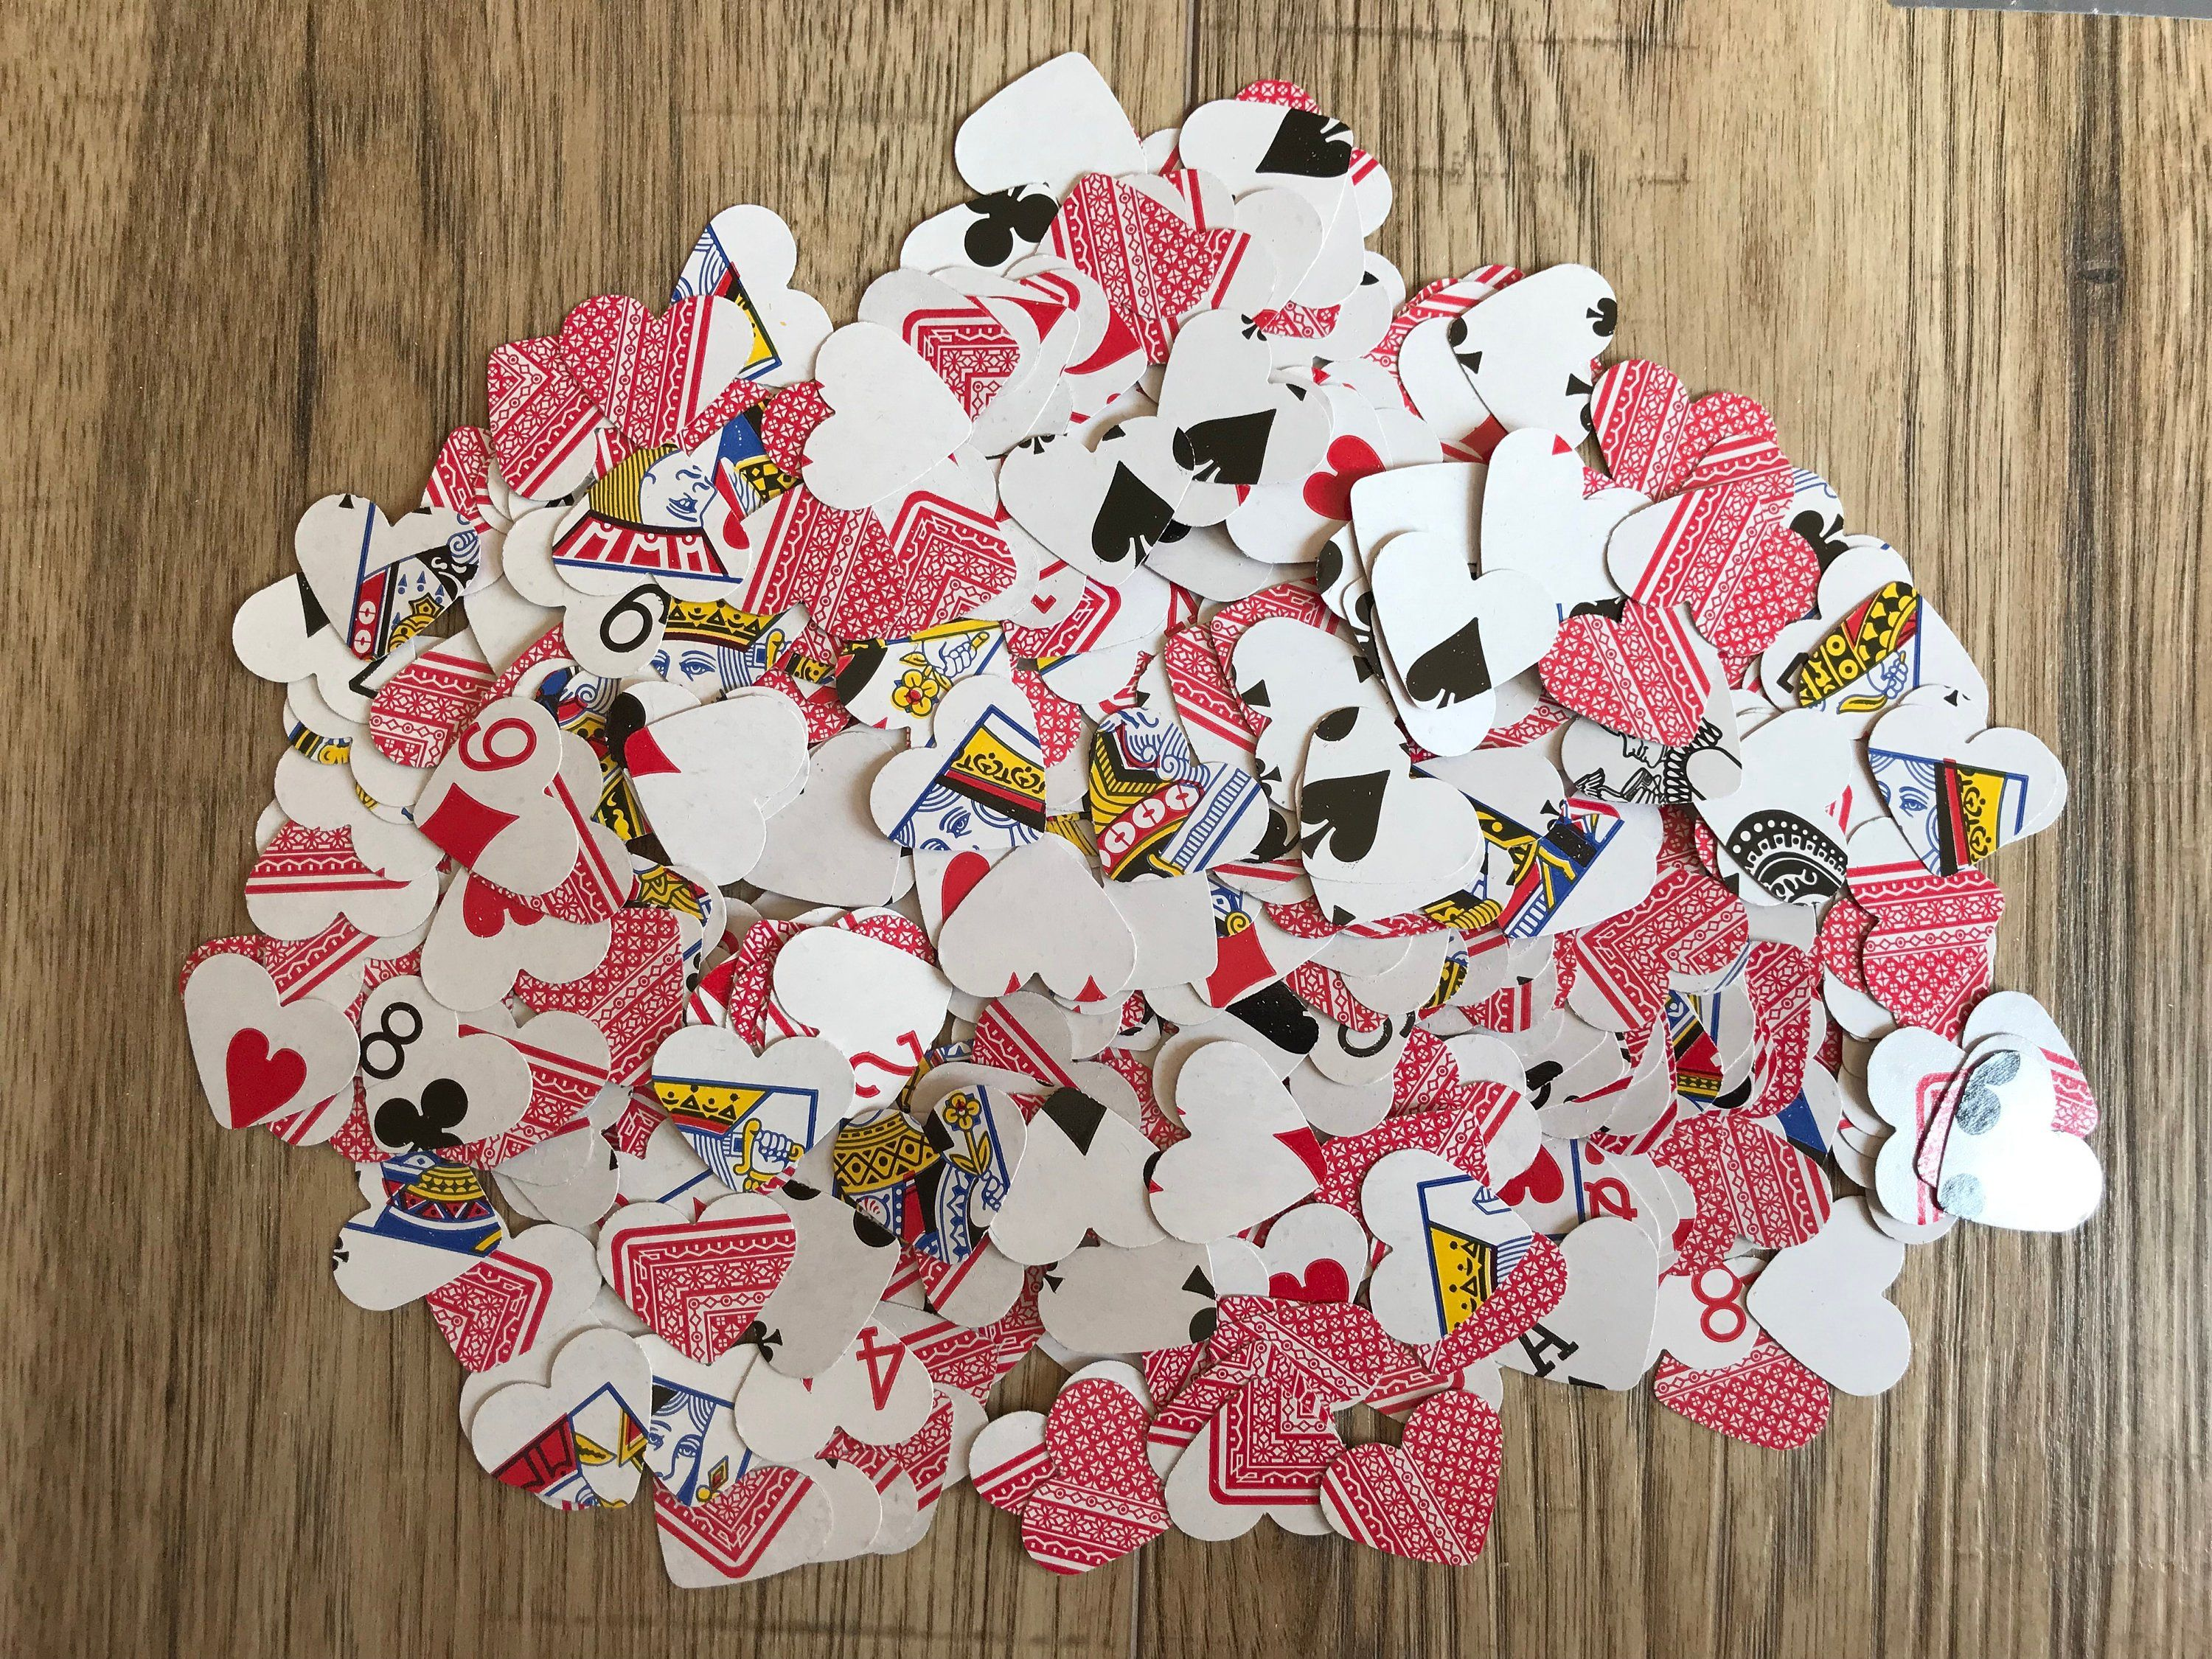 Playing Card Suits//Casino//Poker//Mad Hatter//Wonderland Party Table Top Confetti